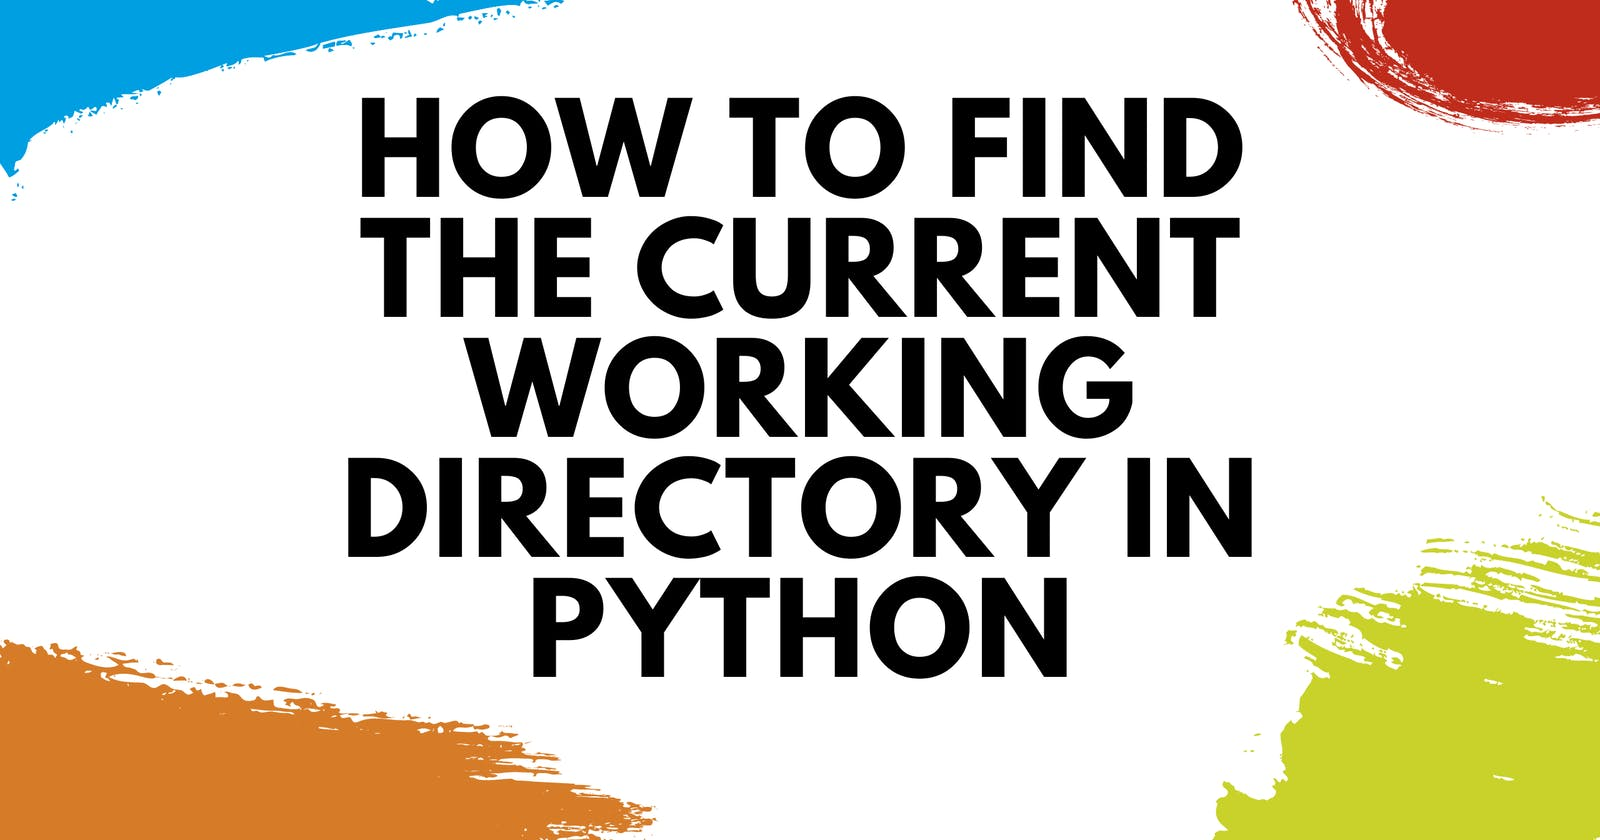 How to Find the Current Working Directory in Python